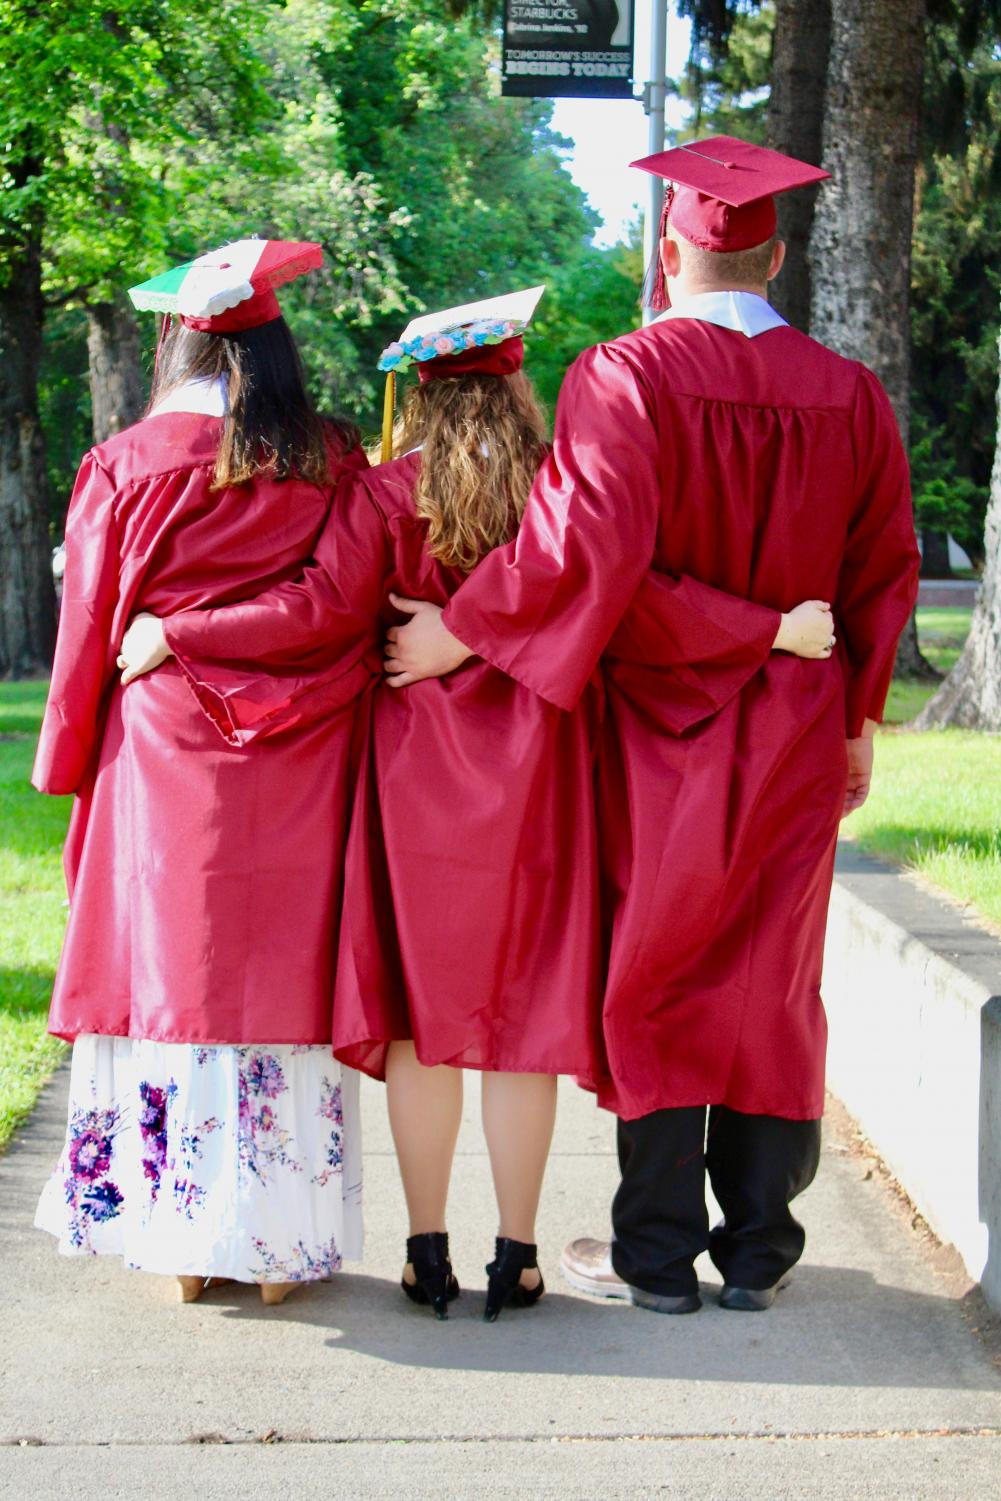 Graduates use commencement as an opportunity to celebrate their accomplishments at college with their friends and family.